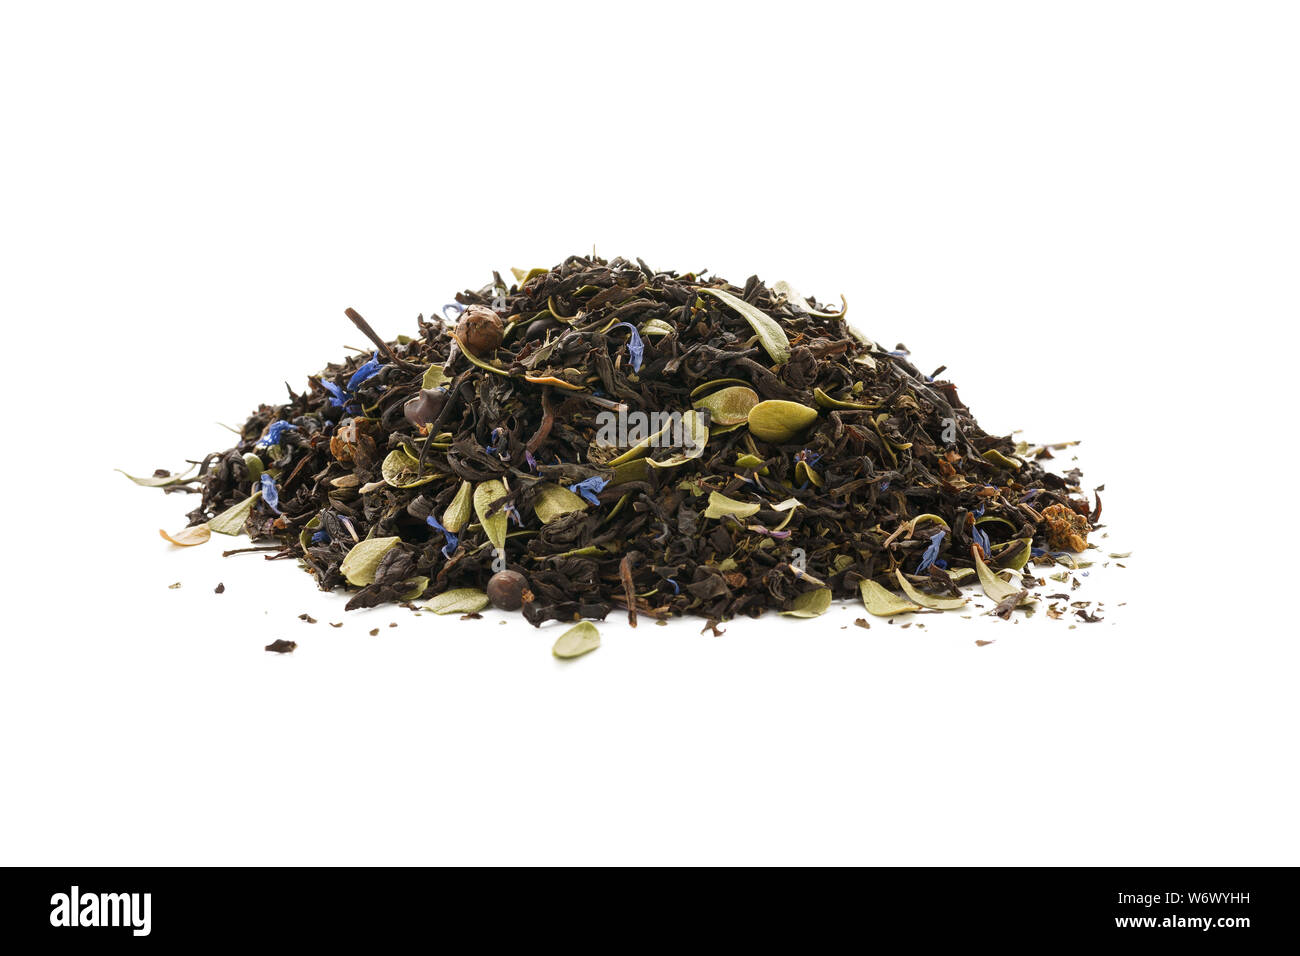 Dry black tea mixed with herbs, flower petals and berries on white background. Stock Photo